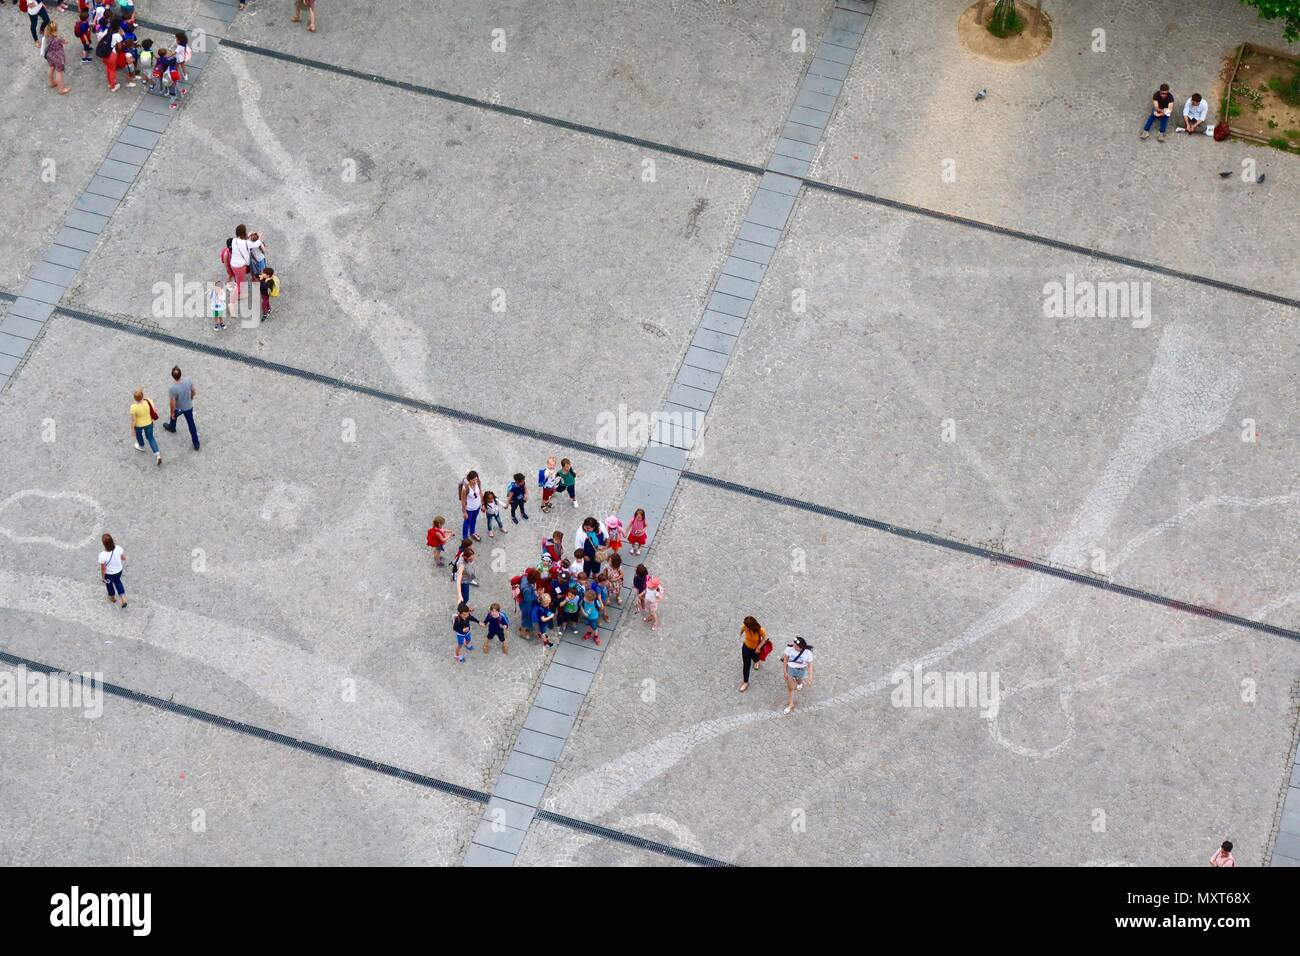 Paris, France. Hot bright sunny spring day, May 2018. School children heading for the Pompidou Centre. - Stock Image